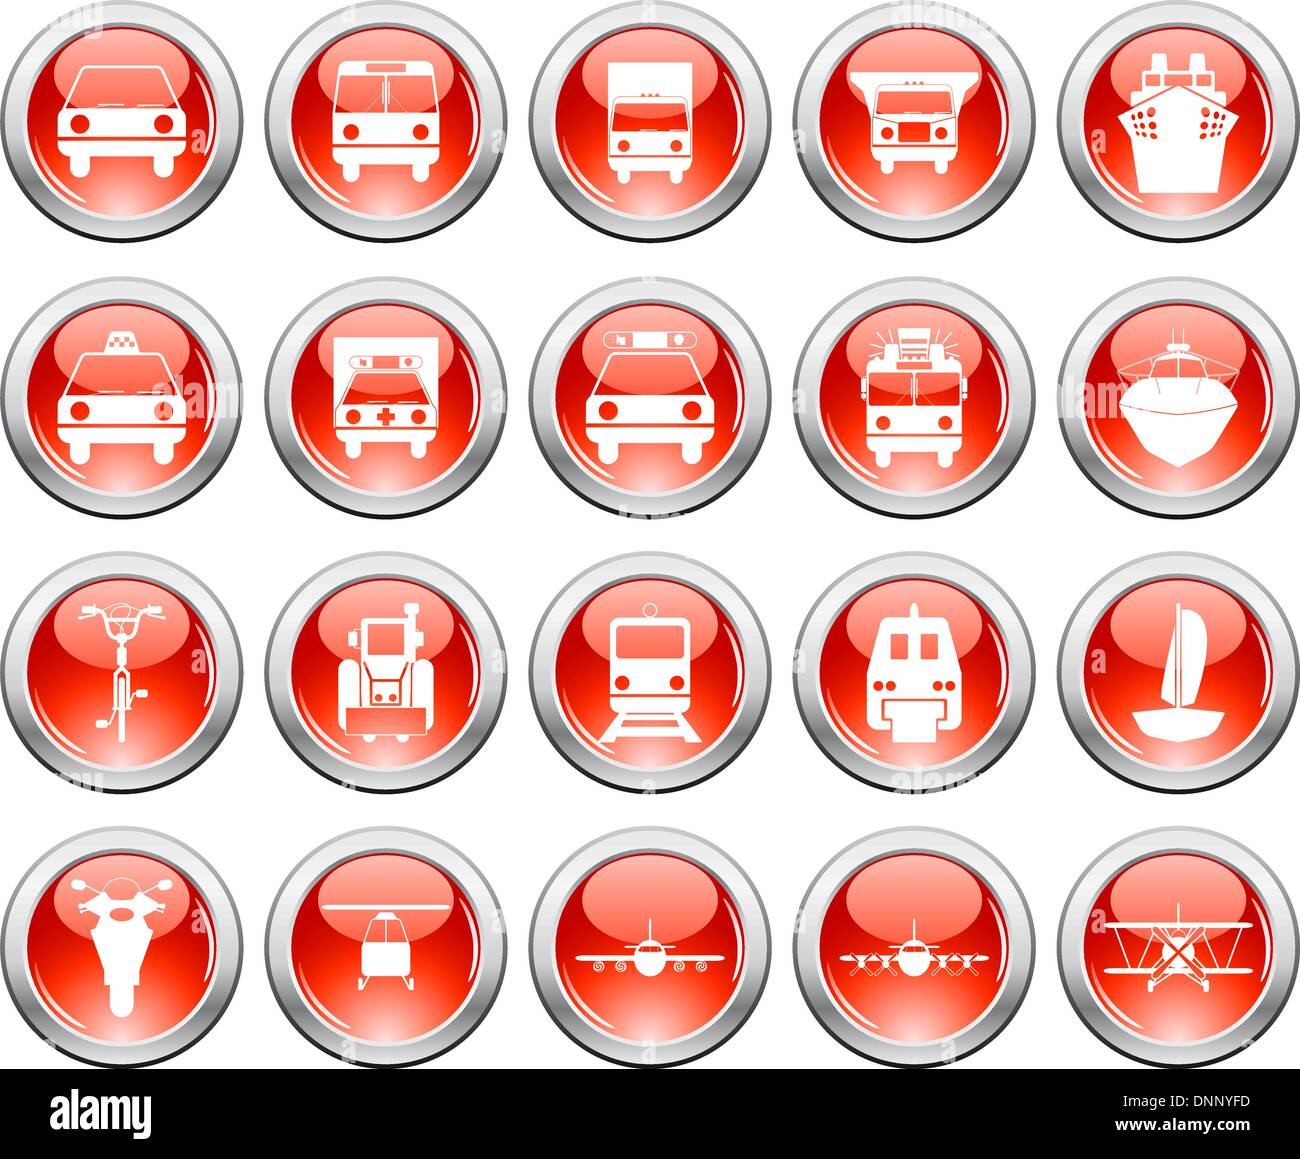 Vector collection of different music themes icons - Stock Image